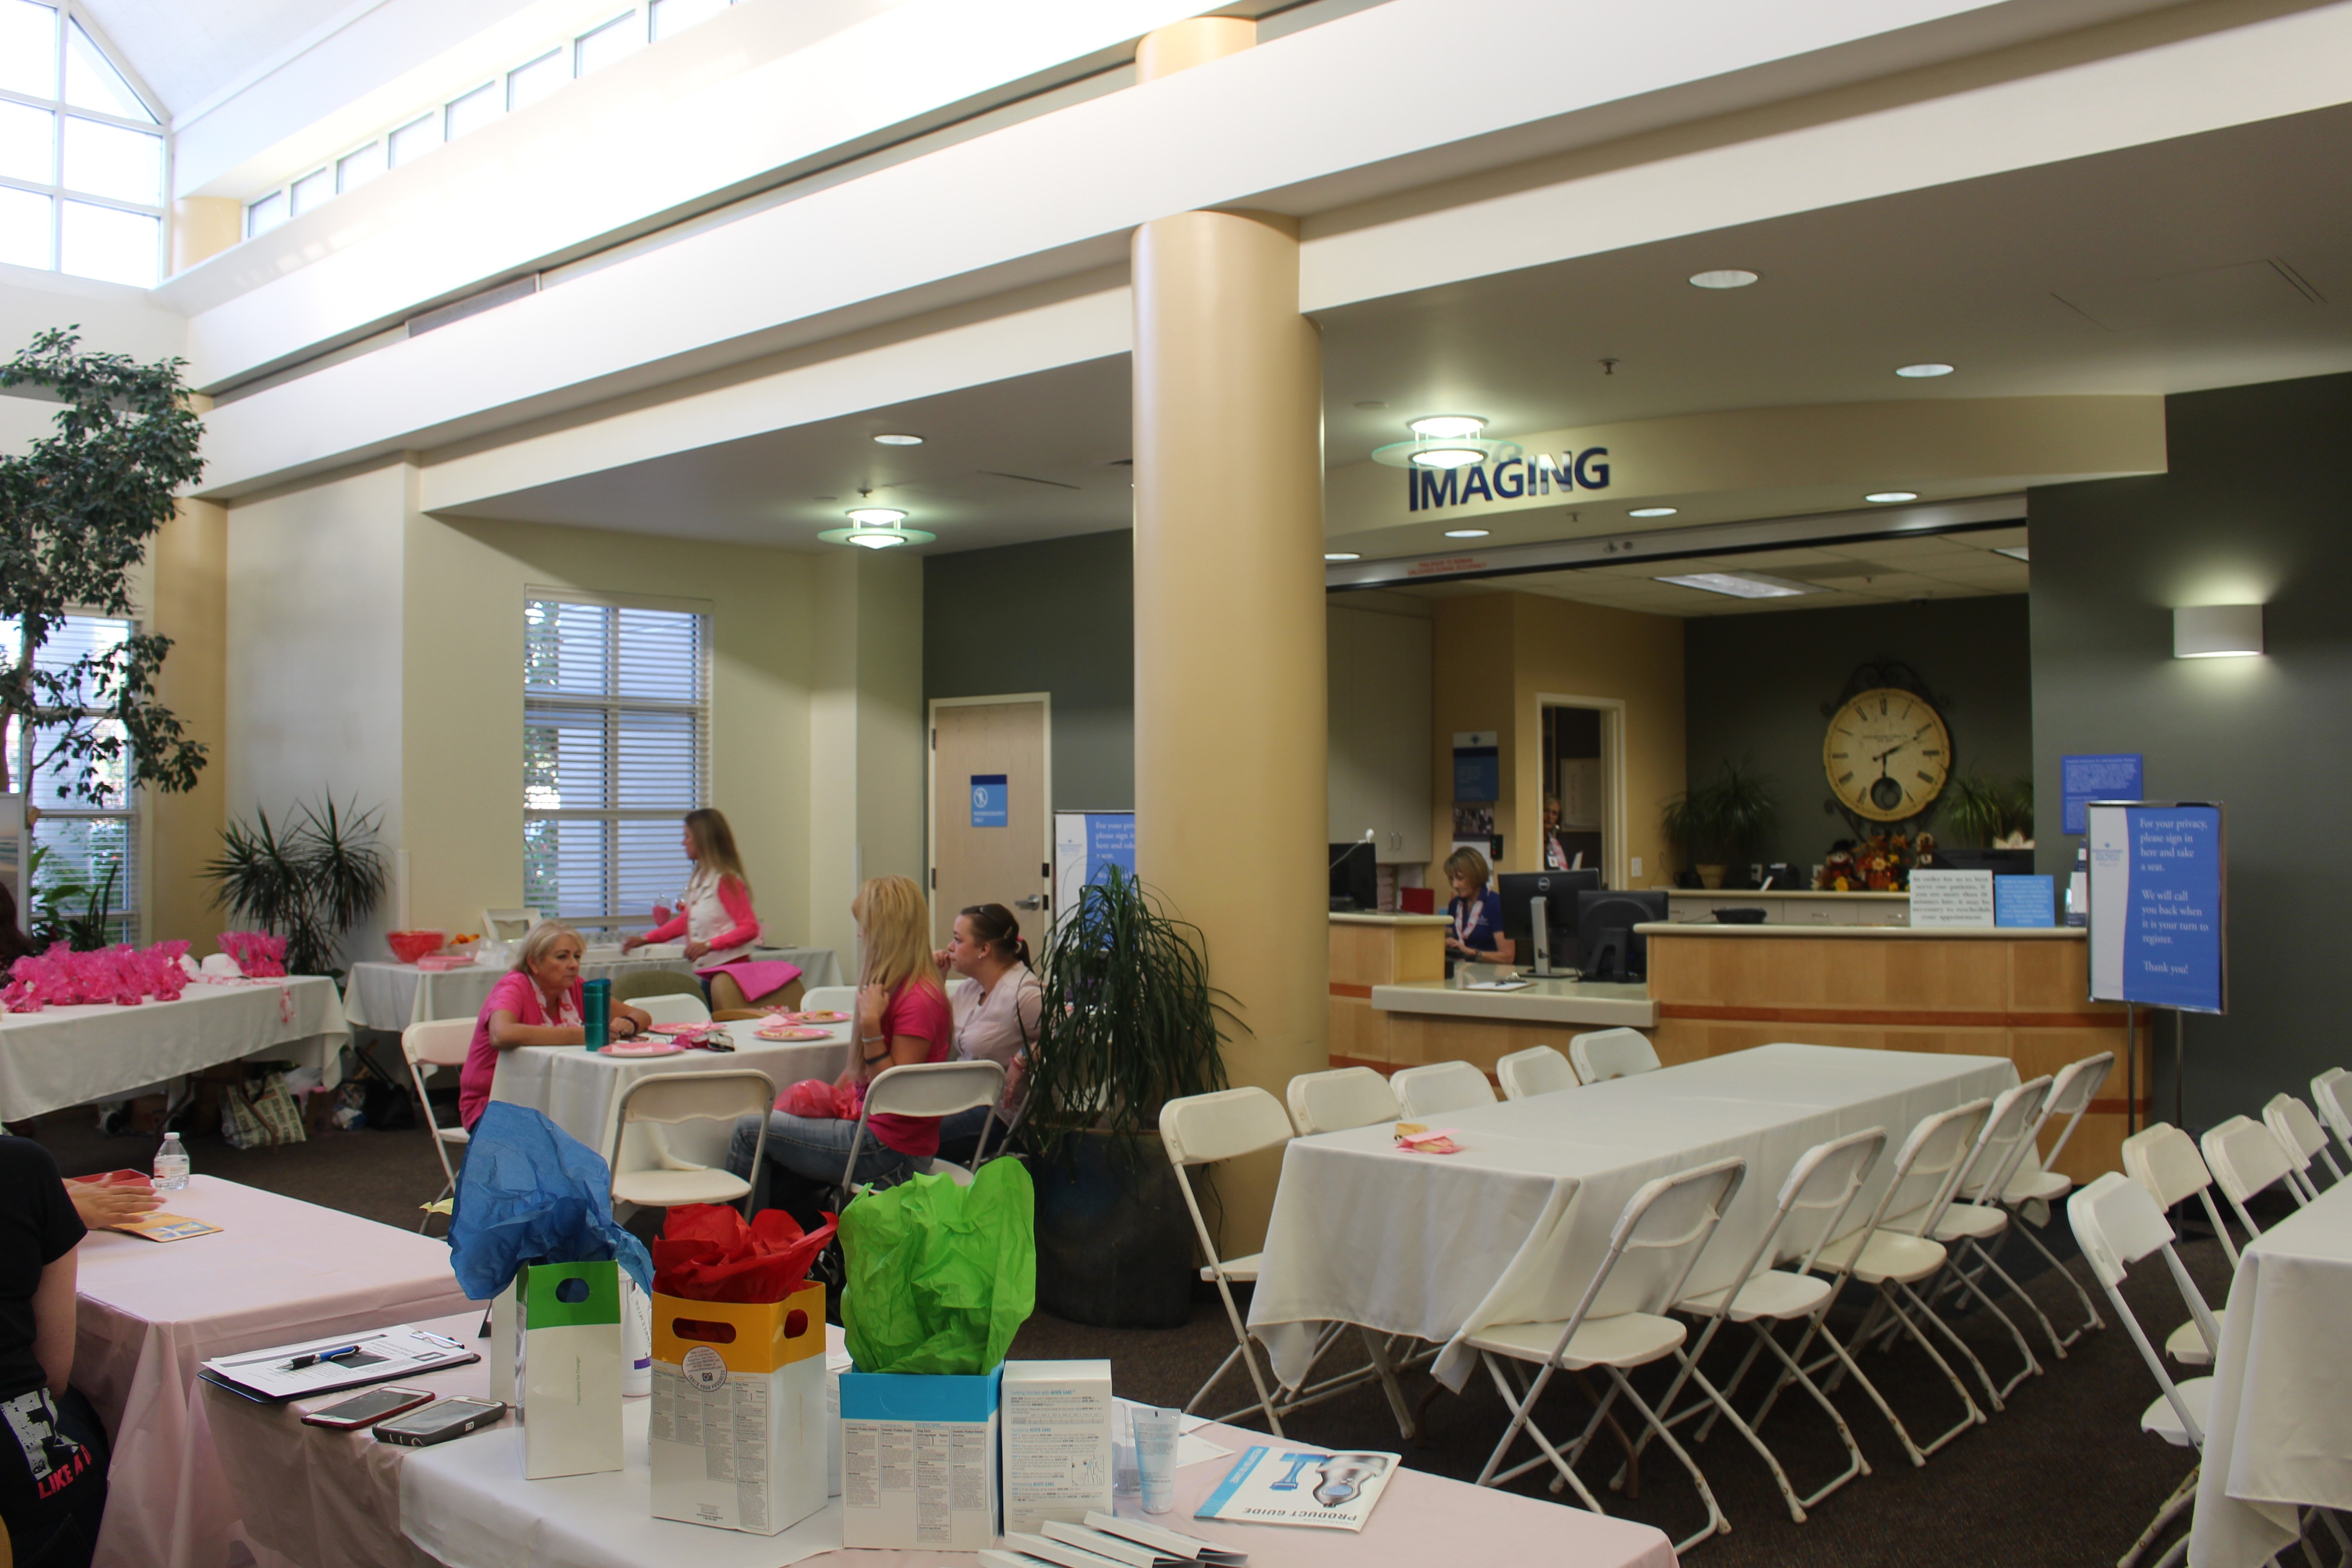 Mammogram Party was held Wenesday at Dixie Regional Medical Center's InstaCare located on River Road Wednesday evening, St. George, Utah, Oct. 19, 2016 | Photo by Cody Blowers, St. George News